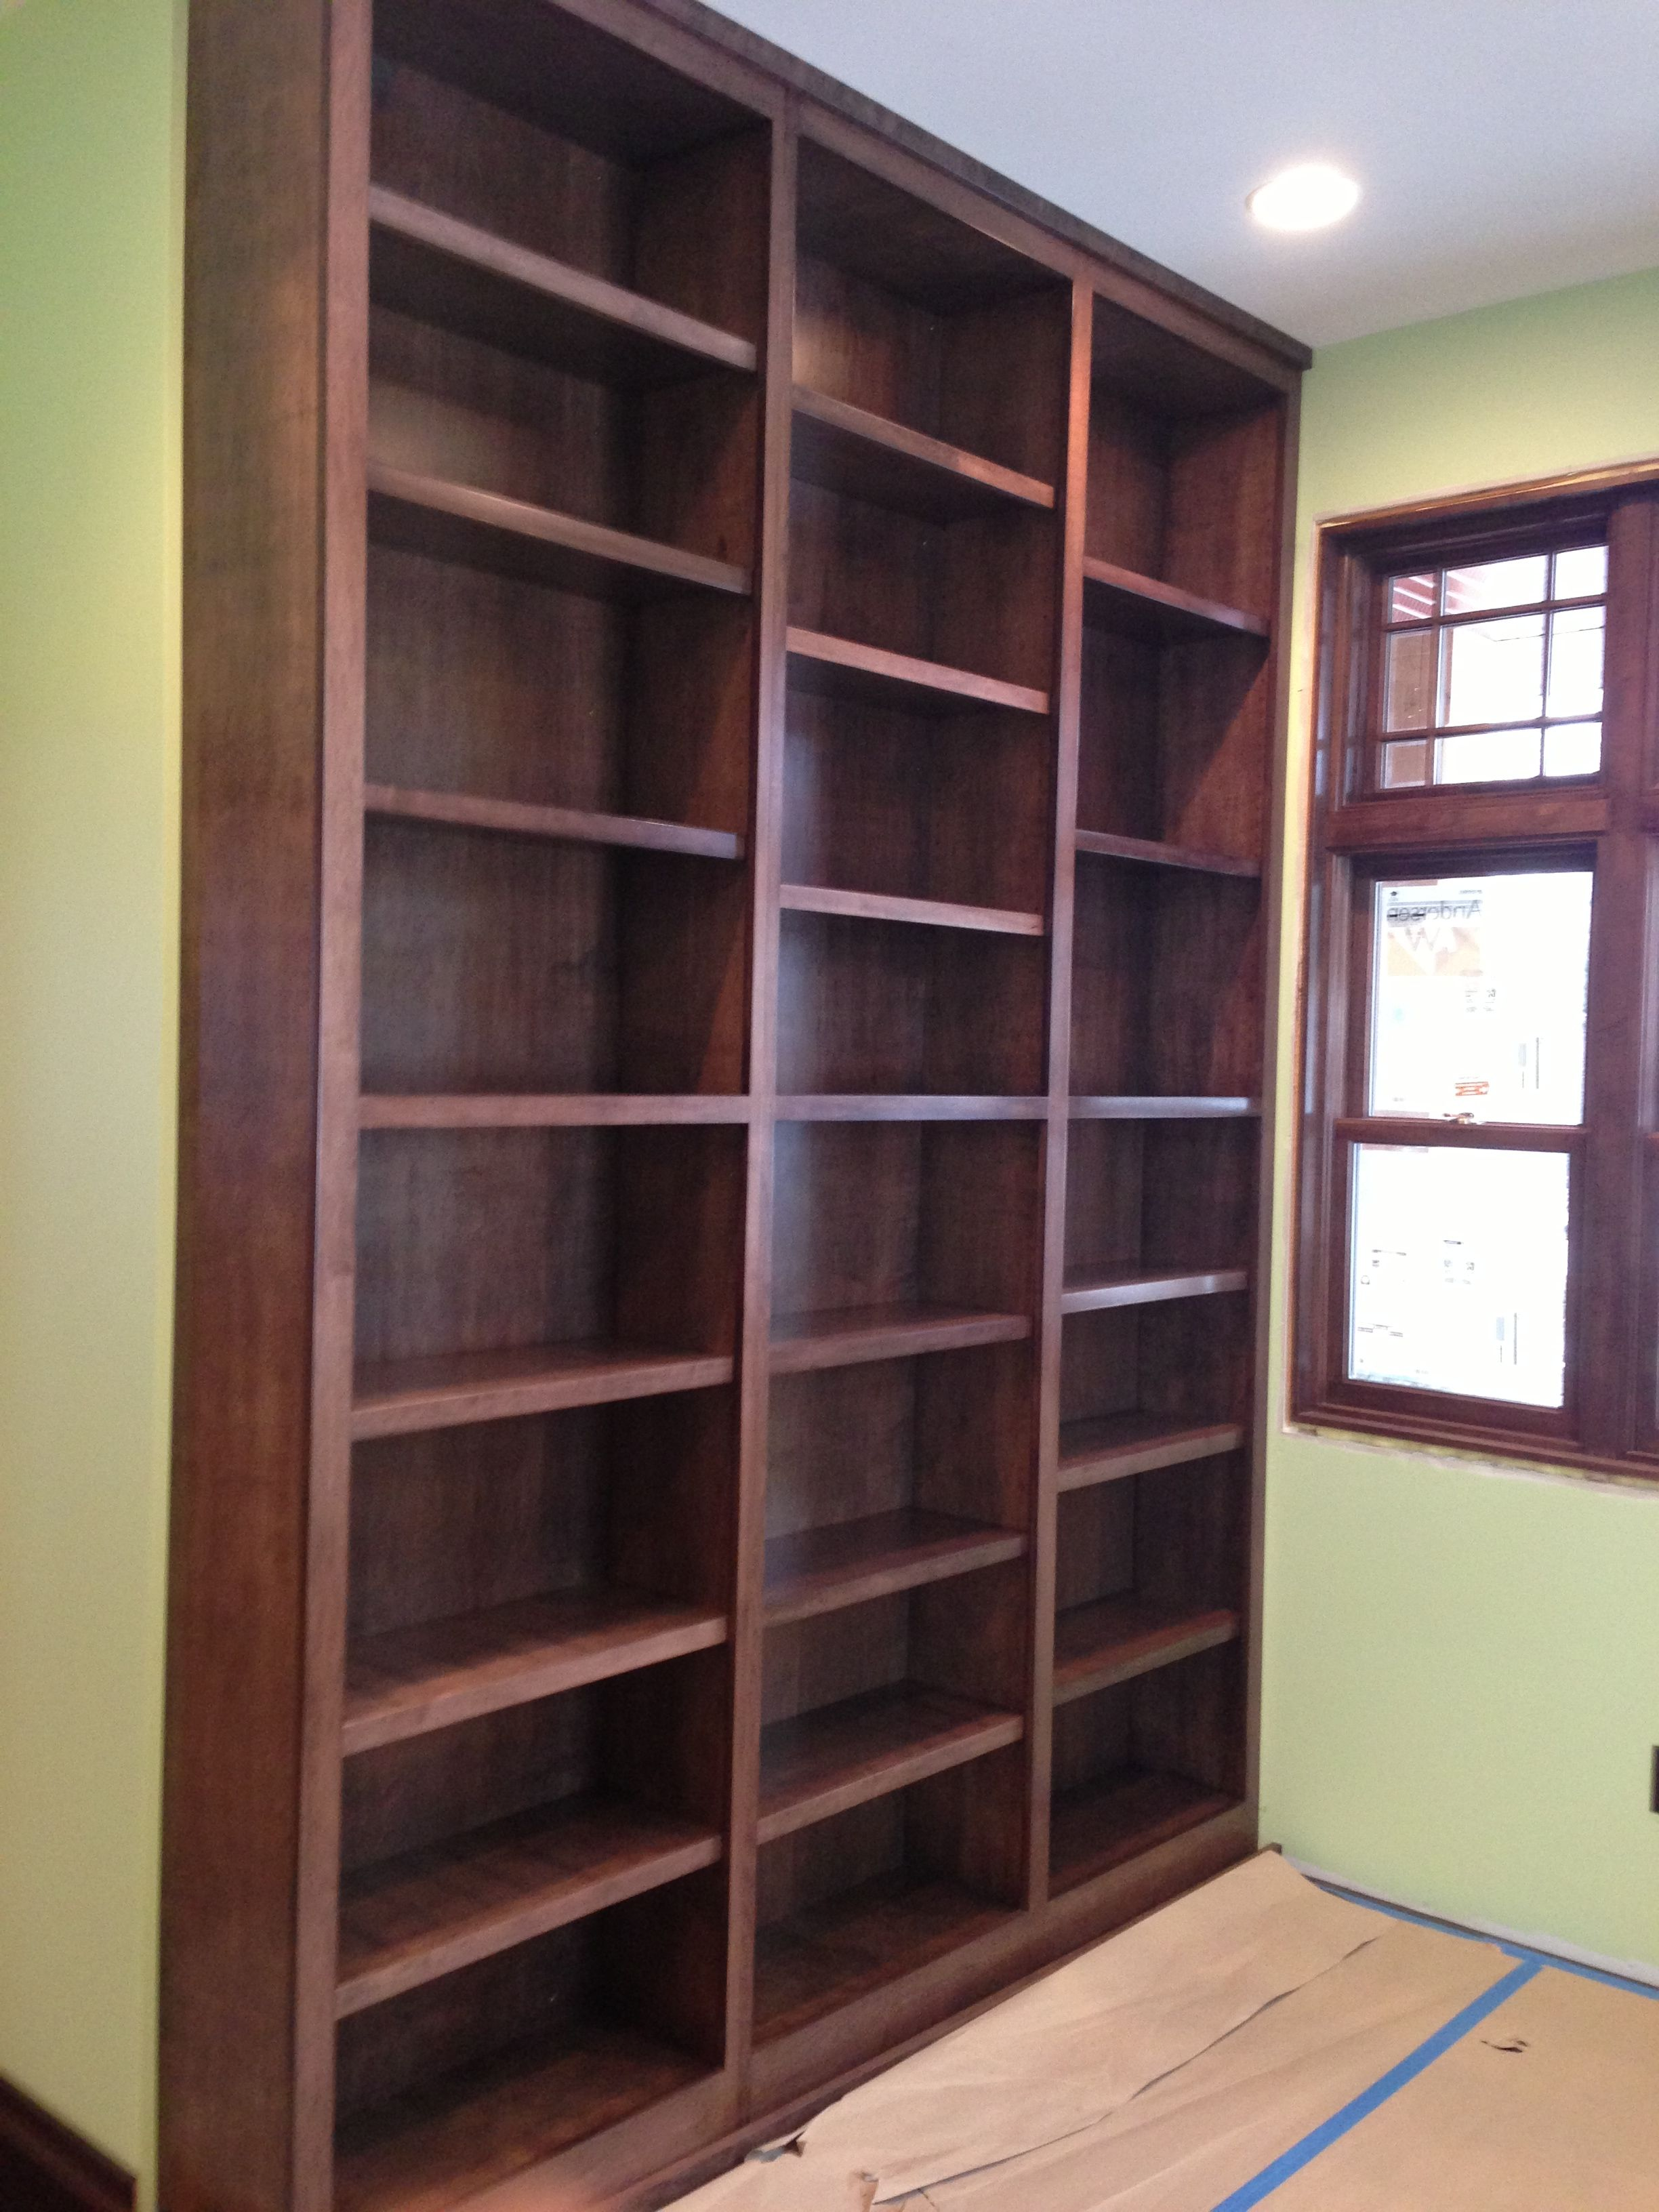 Genial Built In Shelving W/ Lifespan Closets Systems